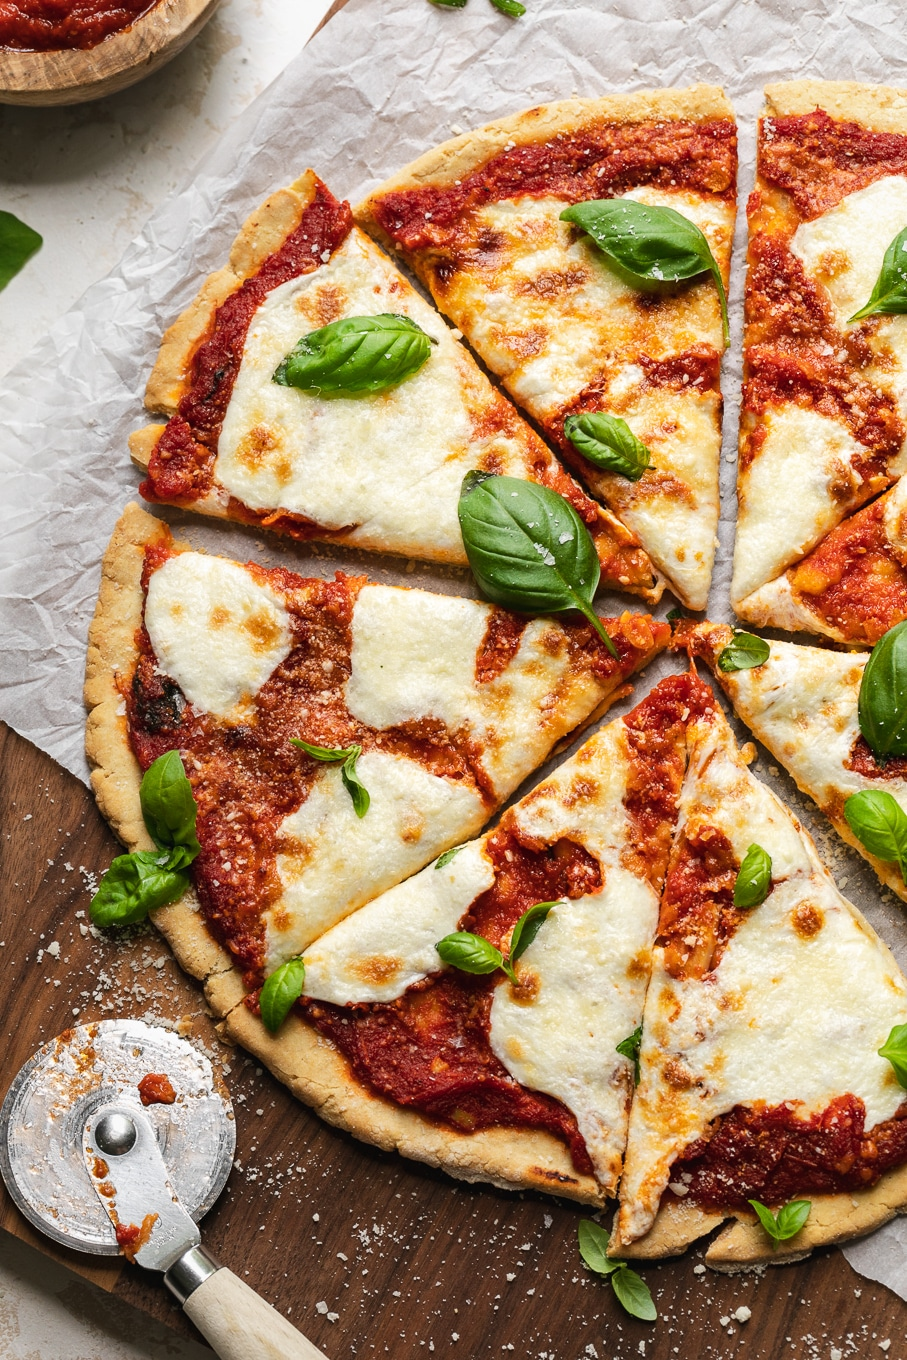 Overhead shot of a pizza cut into slices with fresh basil